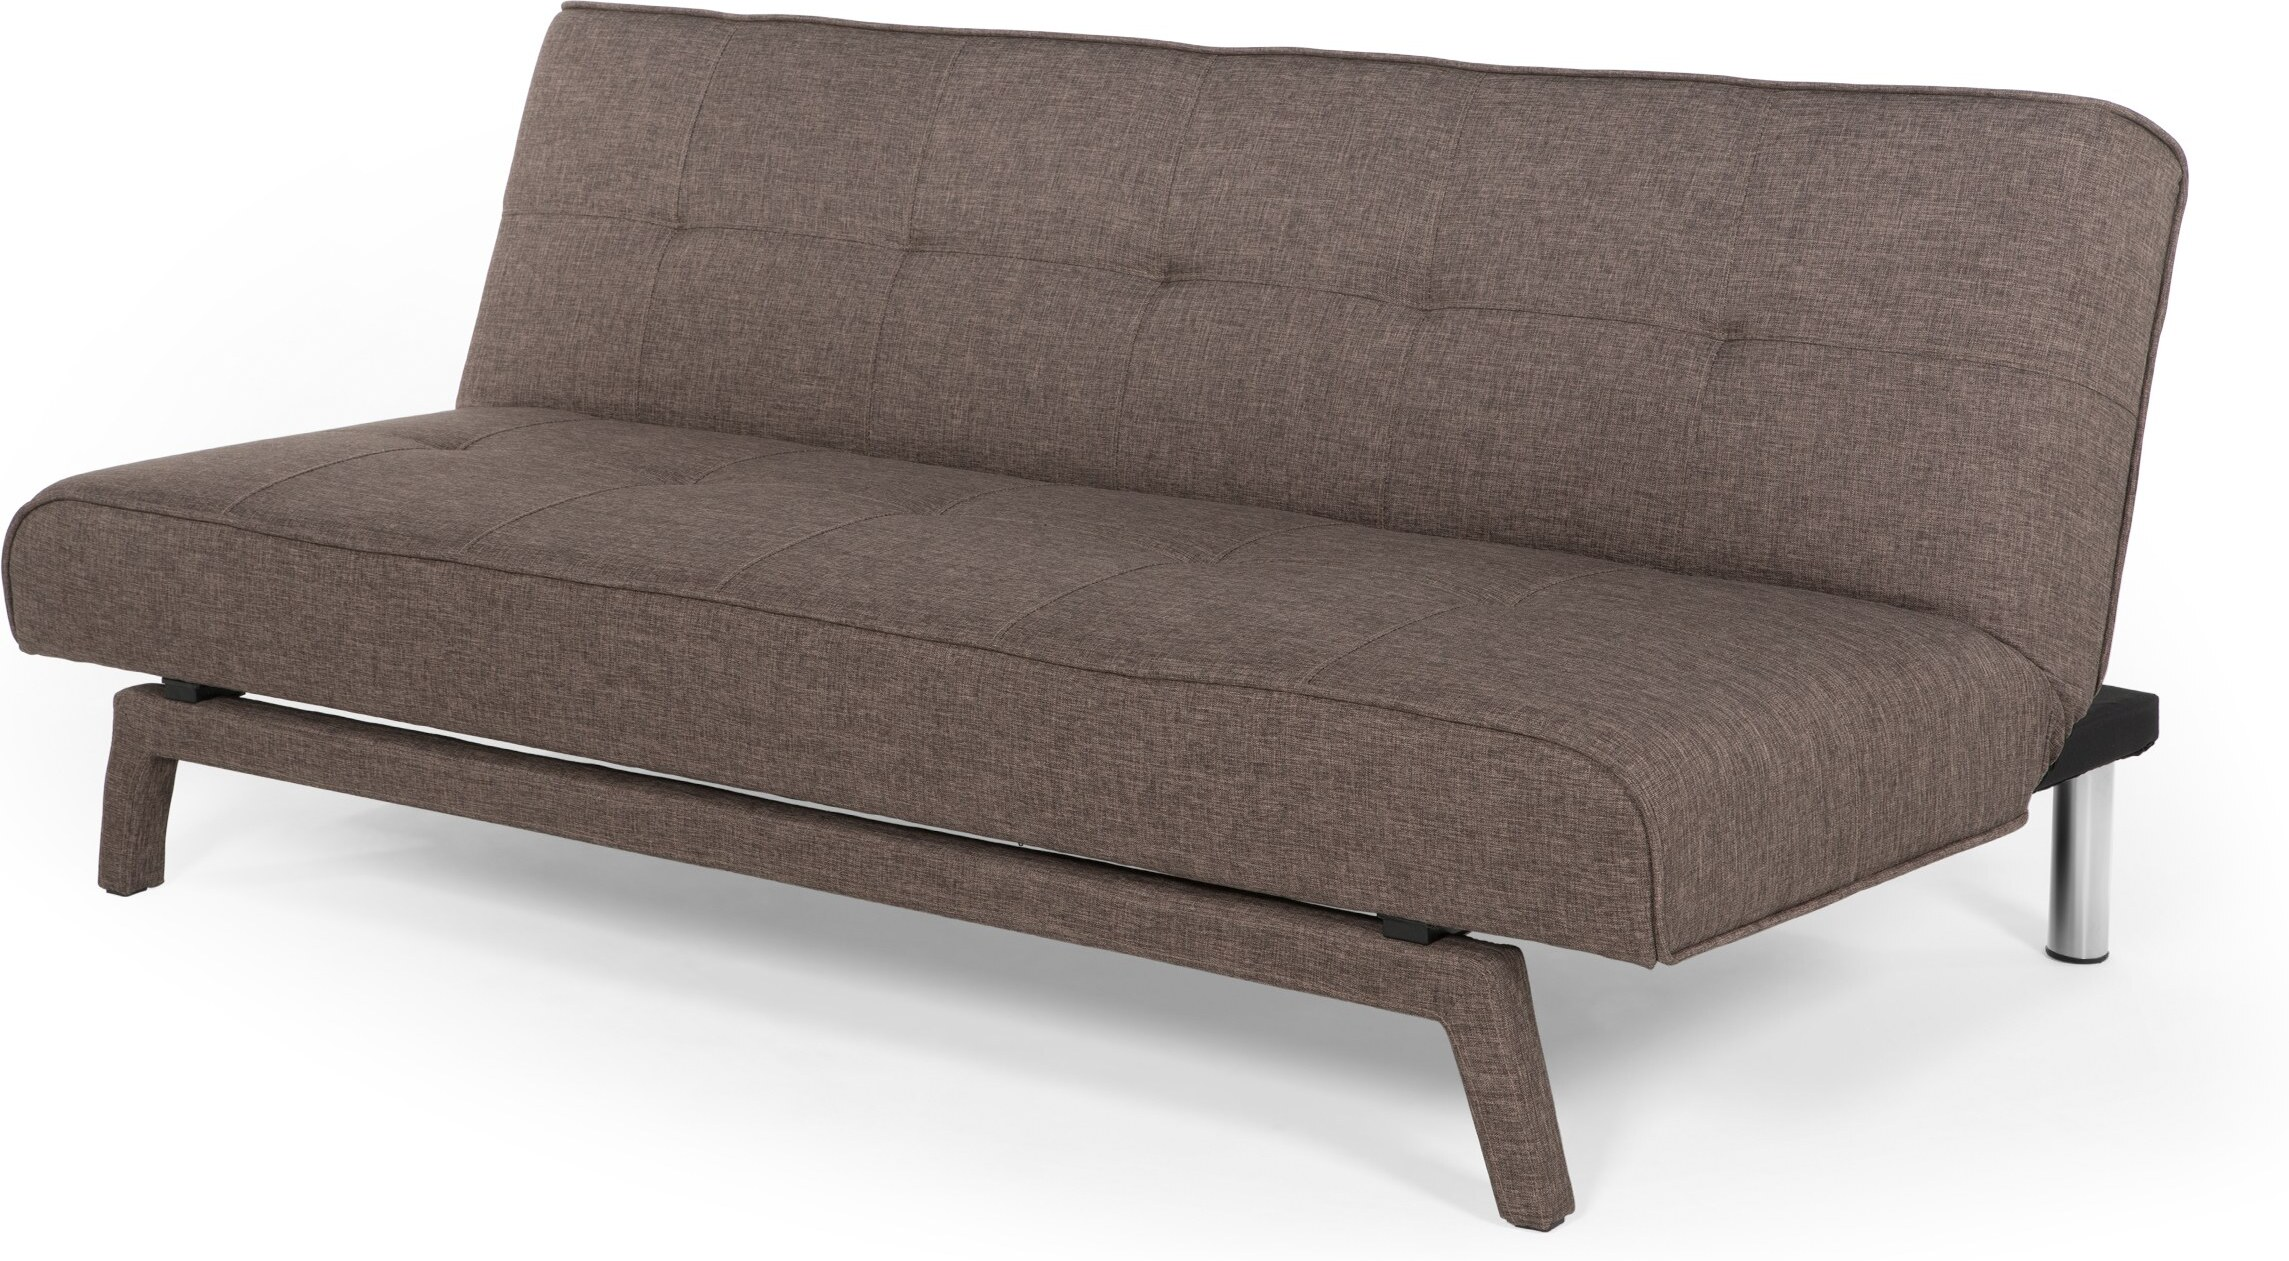 sofasworld showroom sofa clic clac brown bed shop for cheap sofas and save online